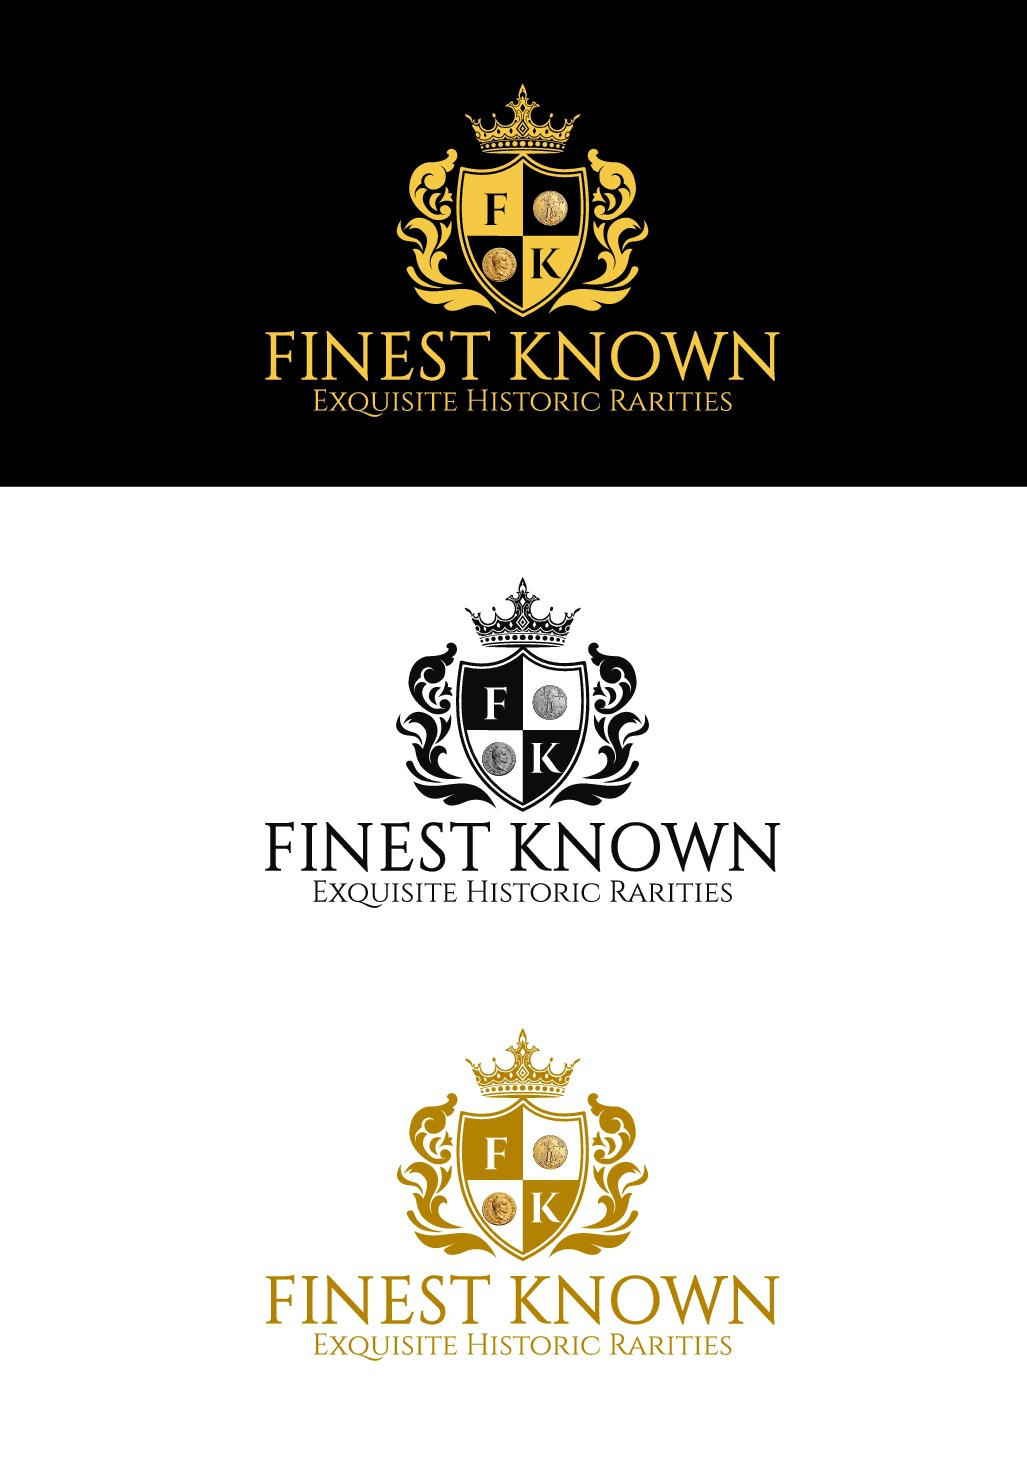 """""""FINEST KNOWN - Exquisite Historic Rarities"""" LOGO CONTEST OPPORTUNITY"""